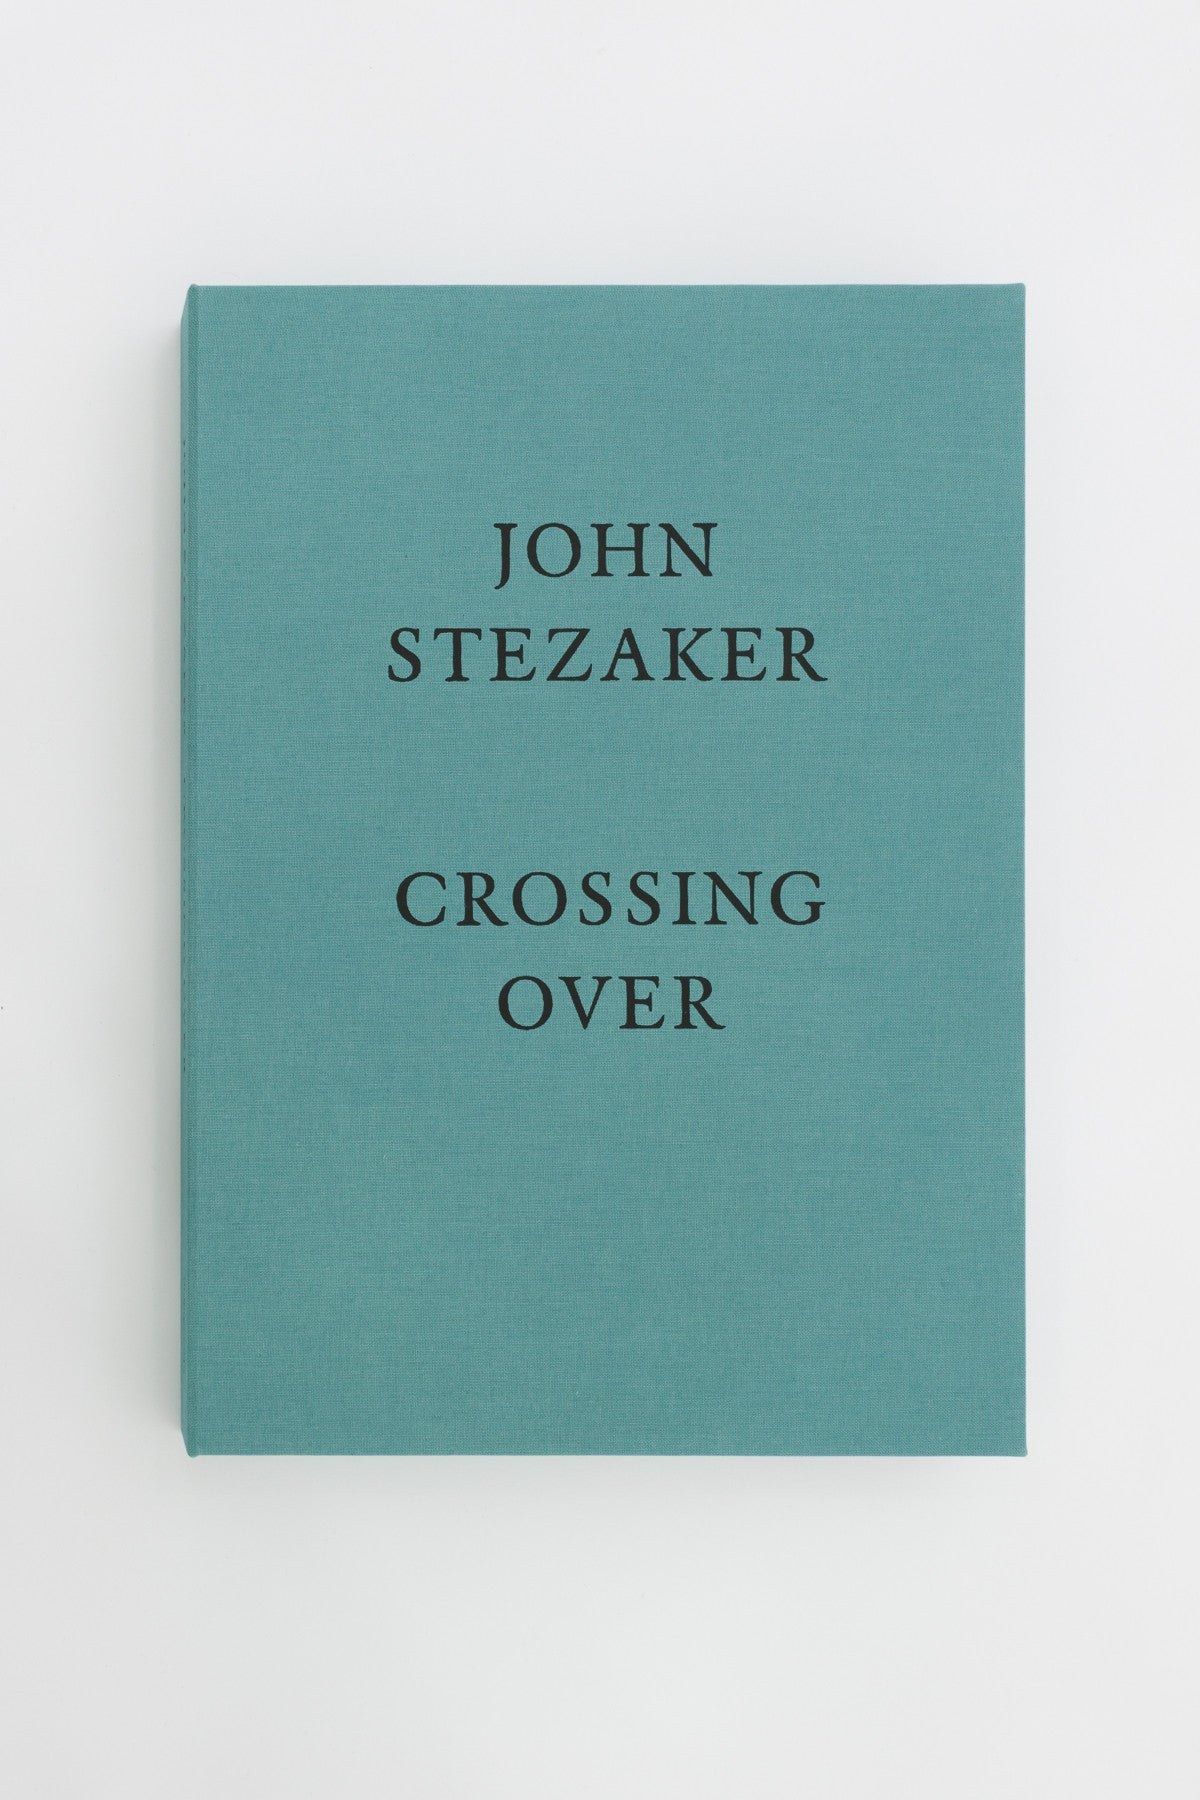 Crossing Over Limited Edition - John Stezaker